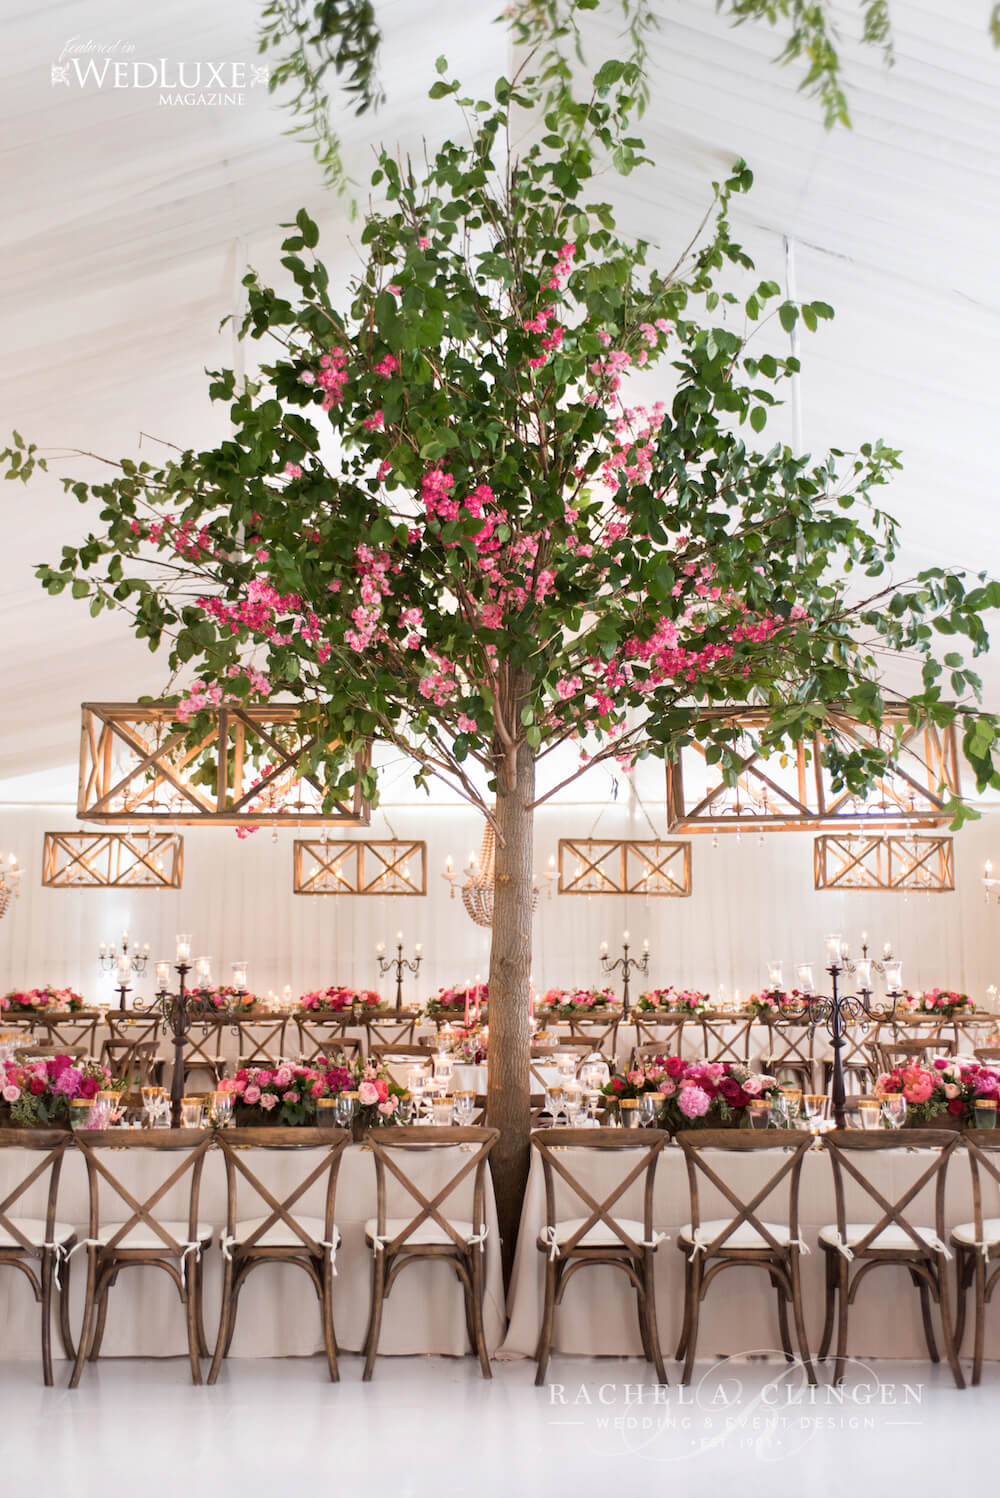 rachel-a-clingen-muskoka-tent-wedding-tree